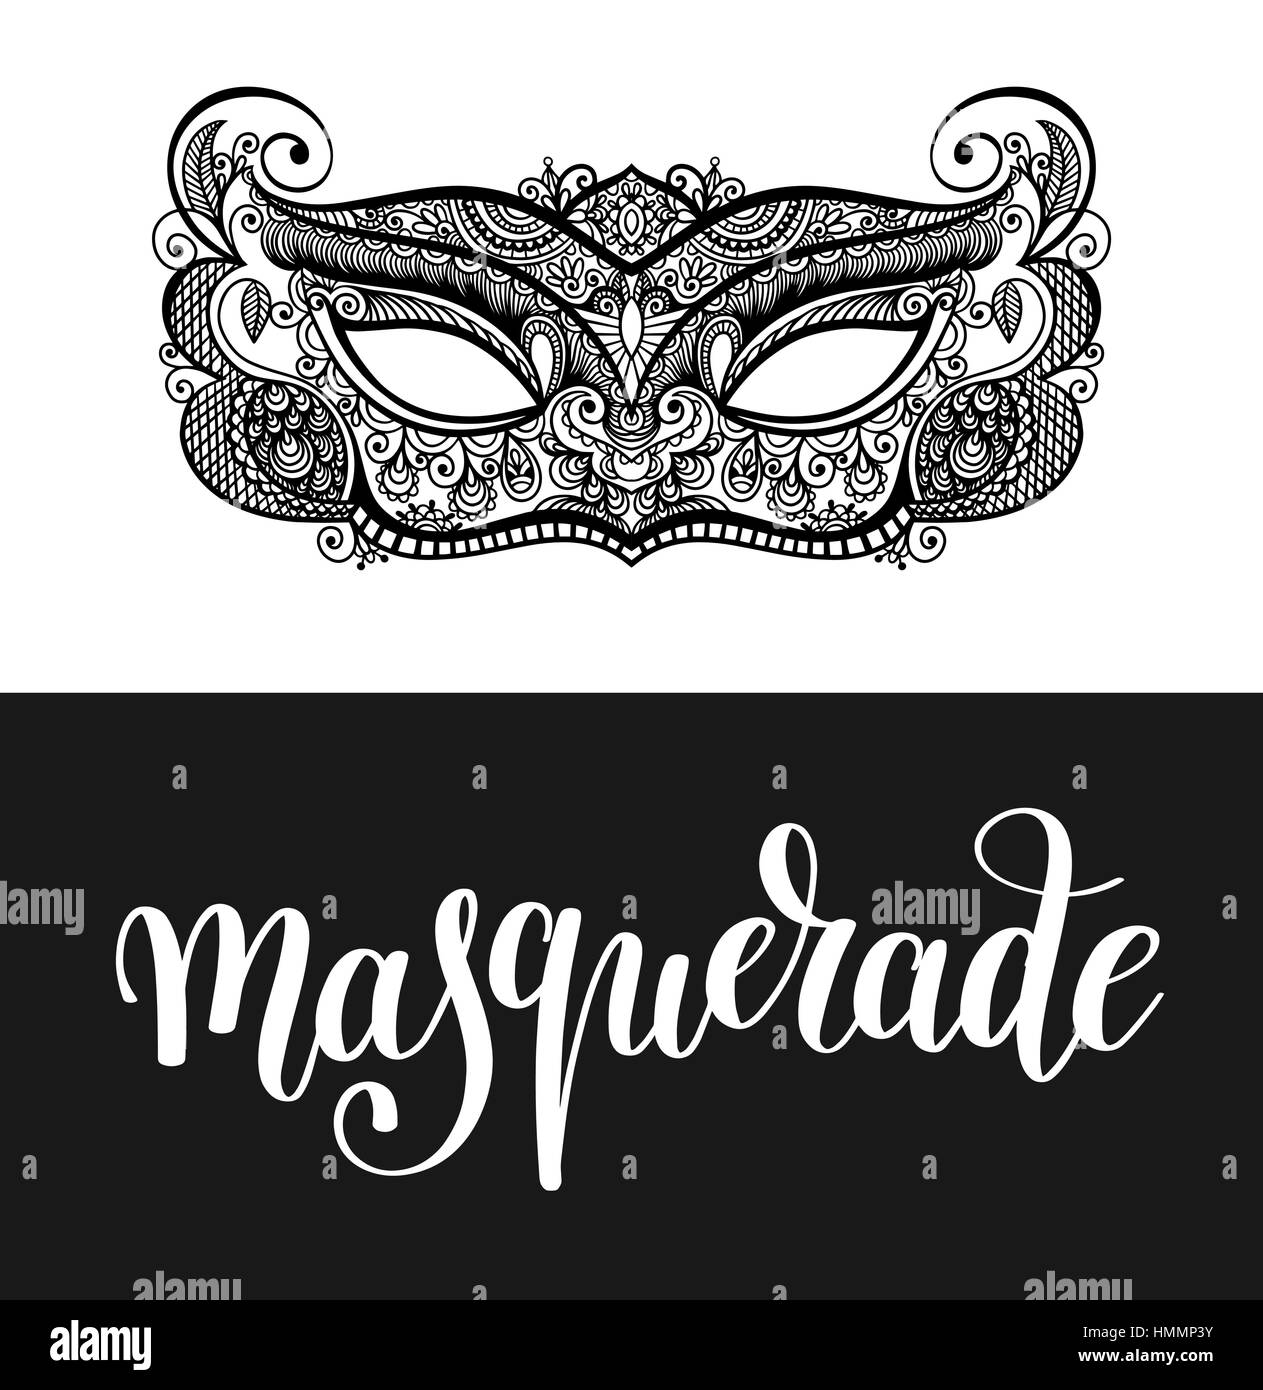 calligraphy brush lettering text design element and carnival mask